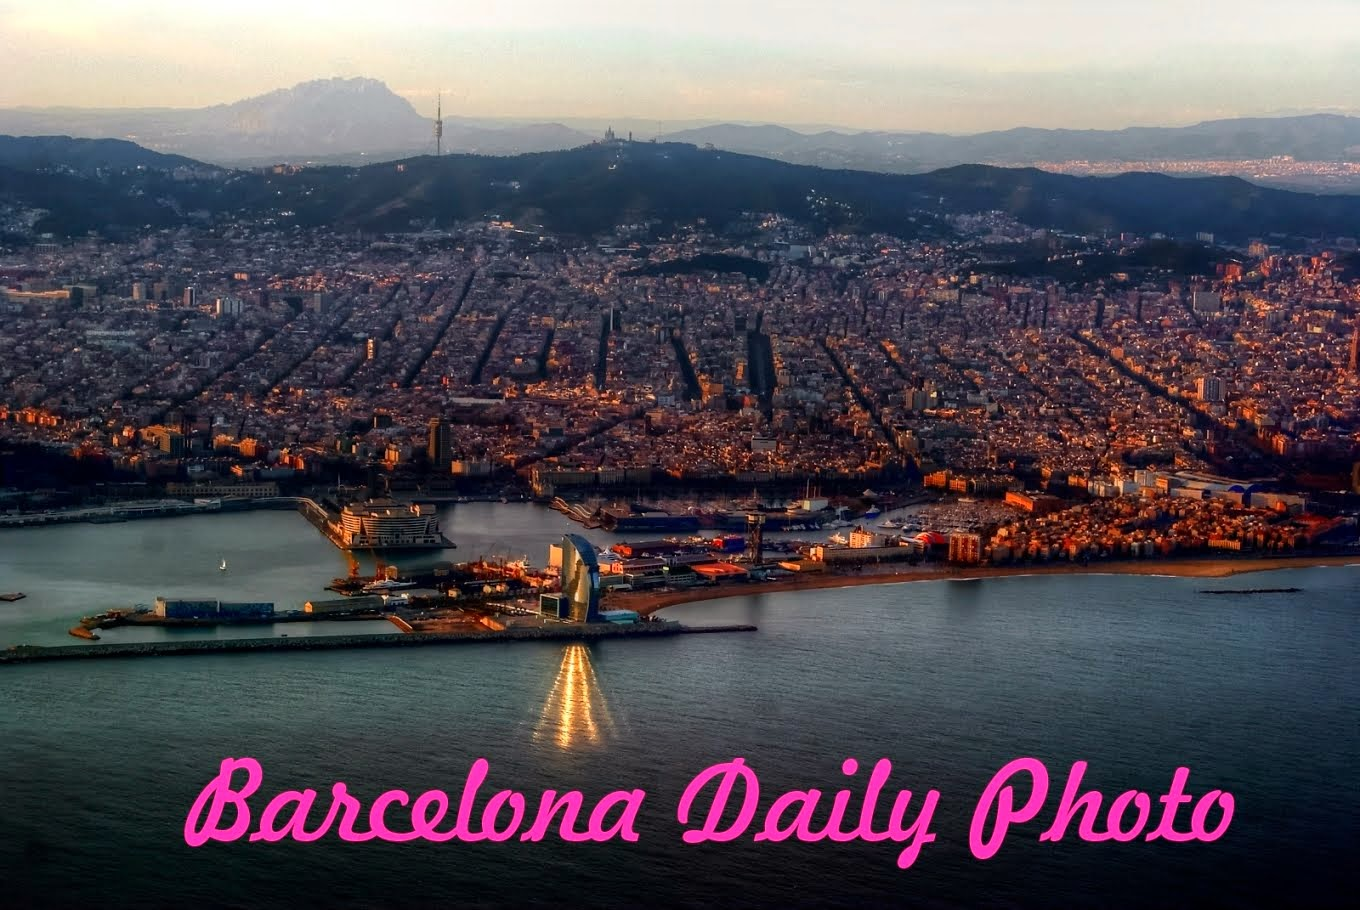 Barcelona Daily Photo